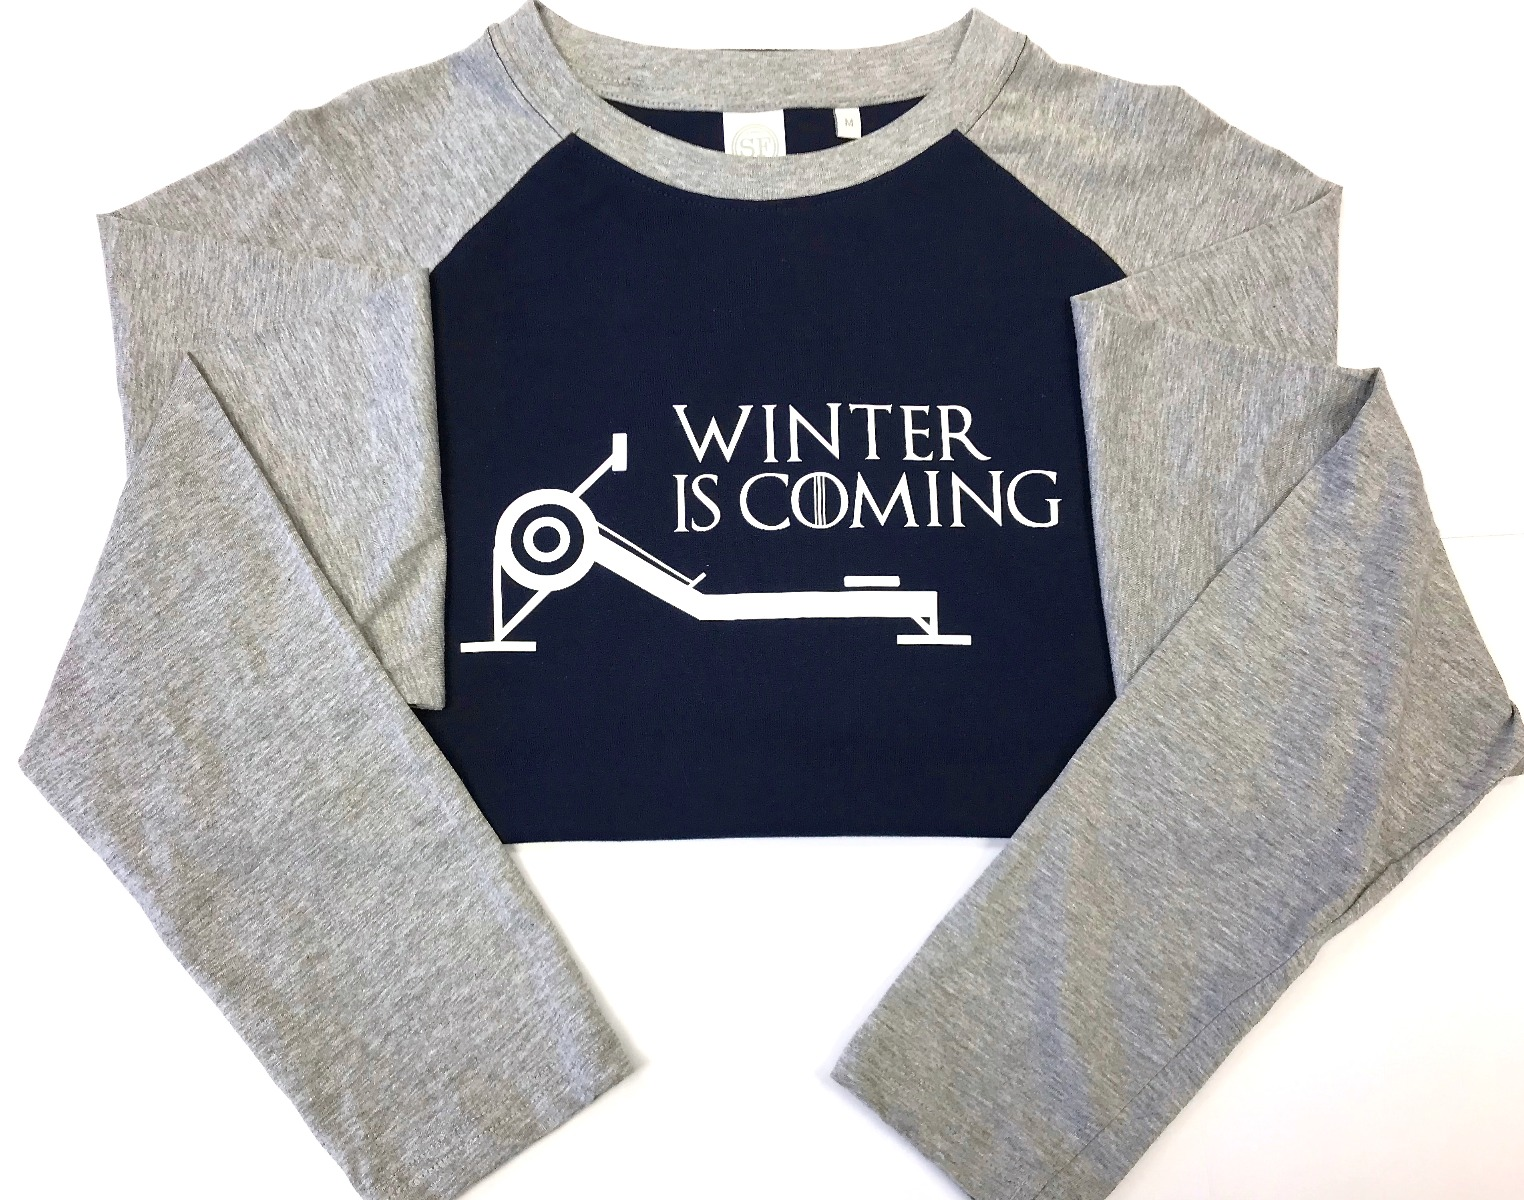 Winter is Coming Long-sleeve Baseball Top men